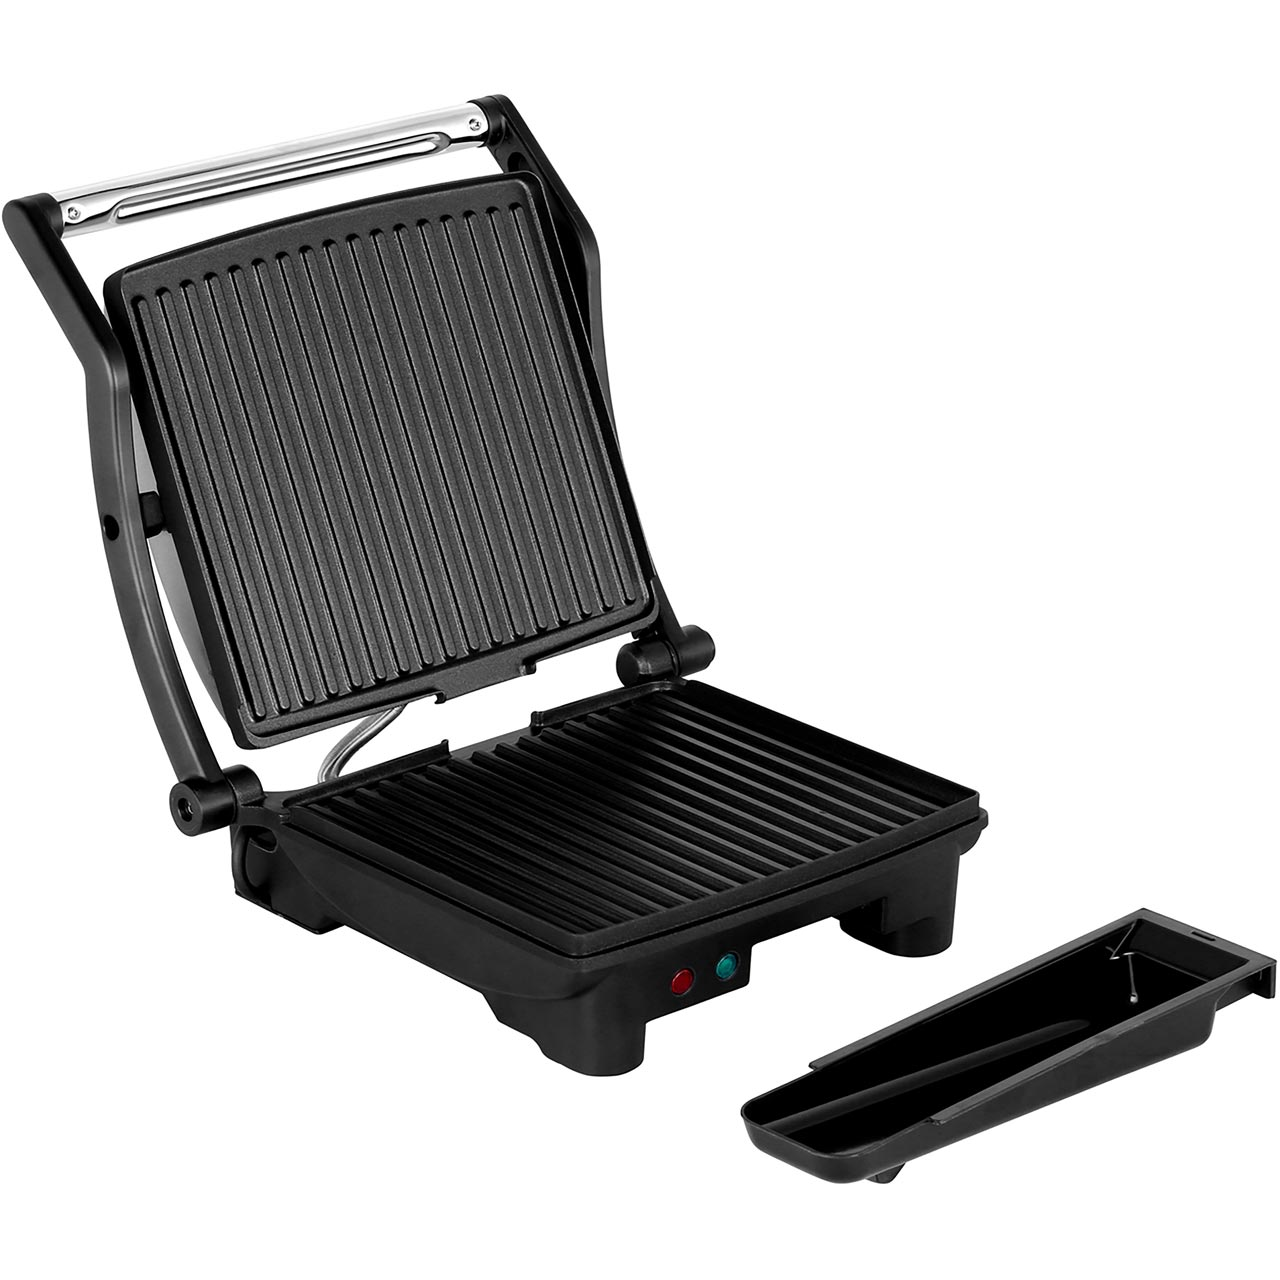 russell hobbs 17888 panini grill and griddle sandwich. Black Bedroom Furniture Sets. Home Design Ideas